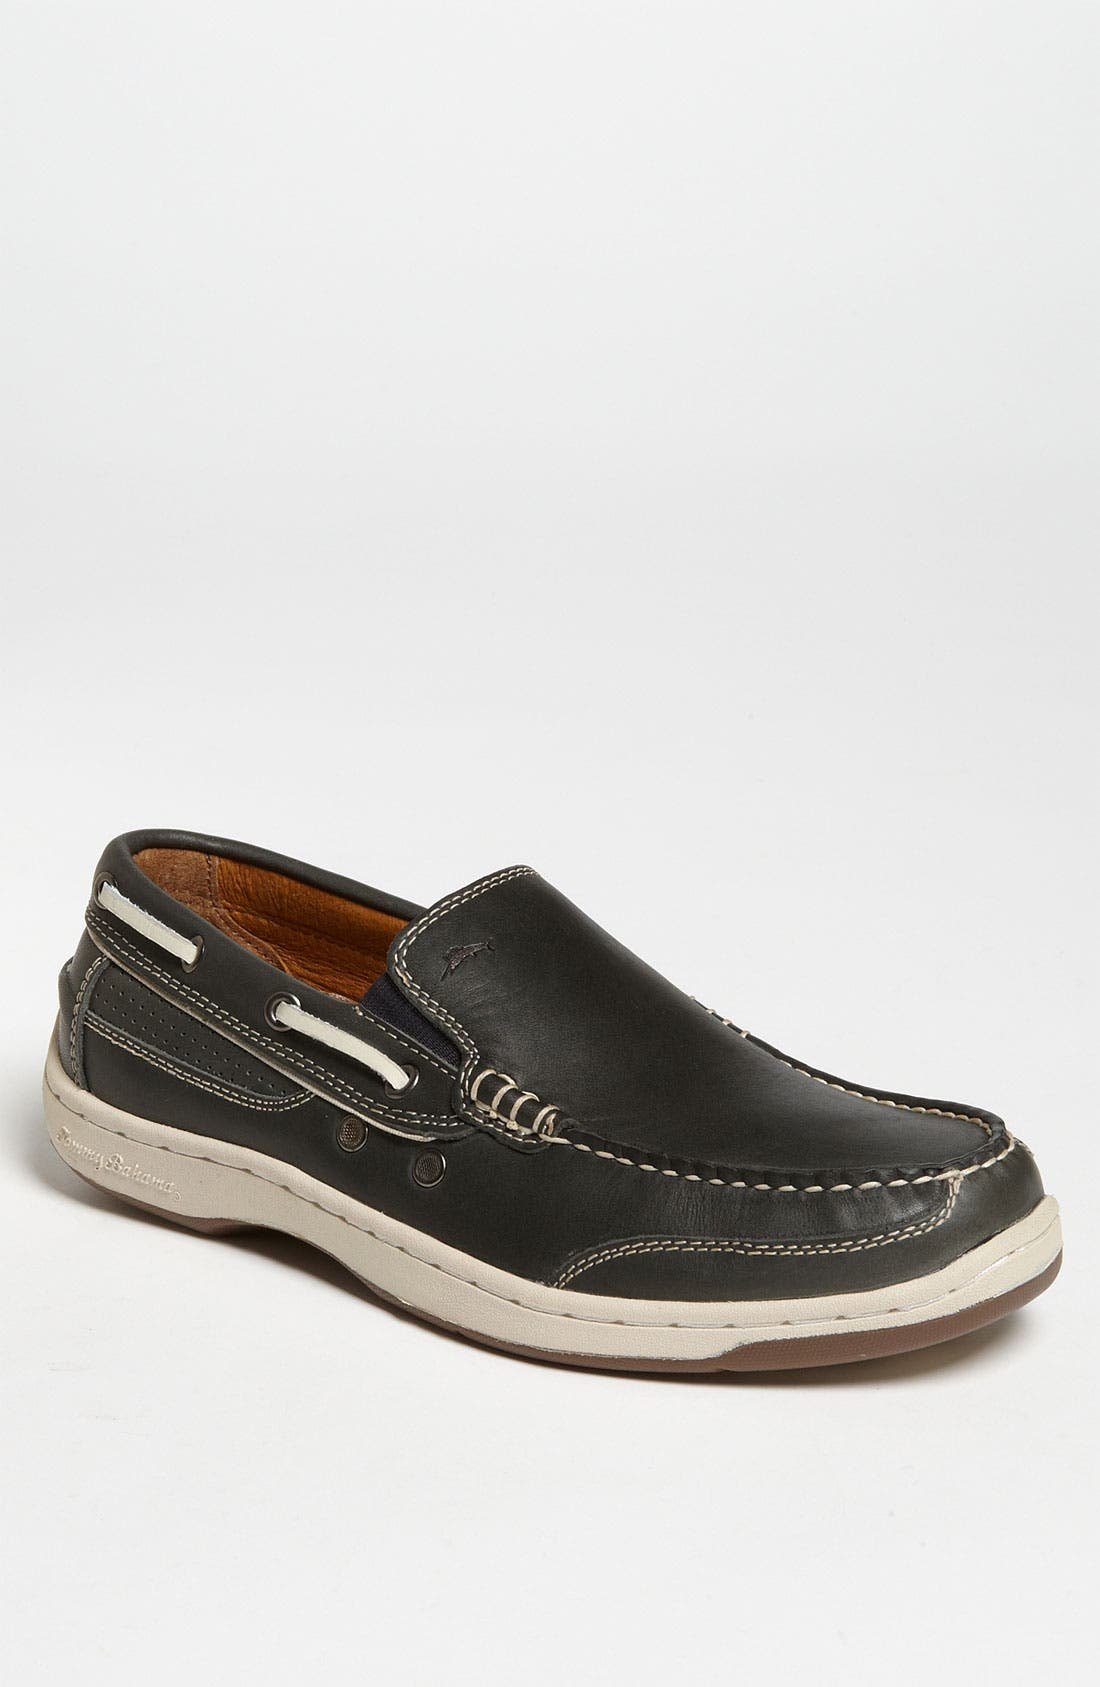 Alternate Image 1 Selected - Tommy Bahama 'First Mate' Boat Shoe